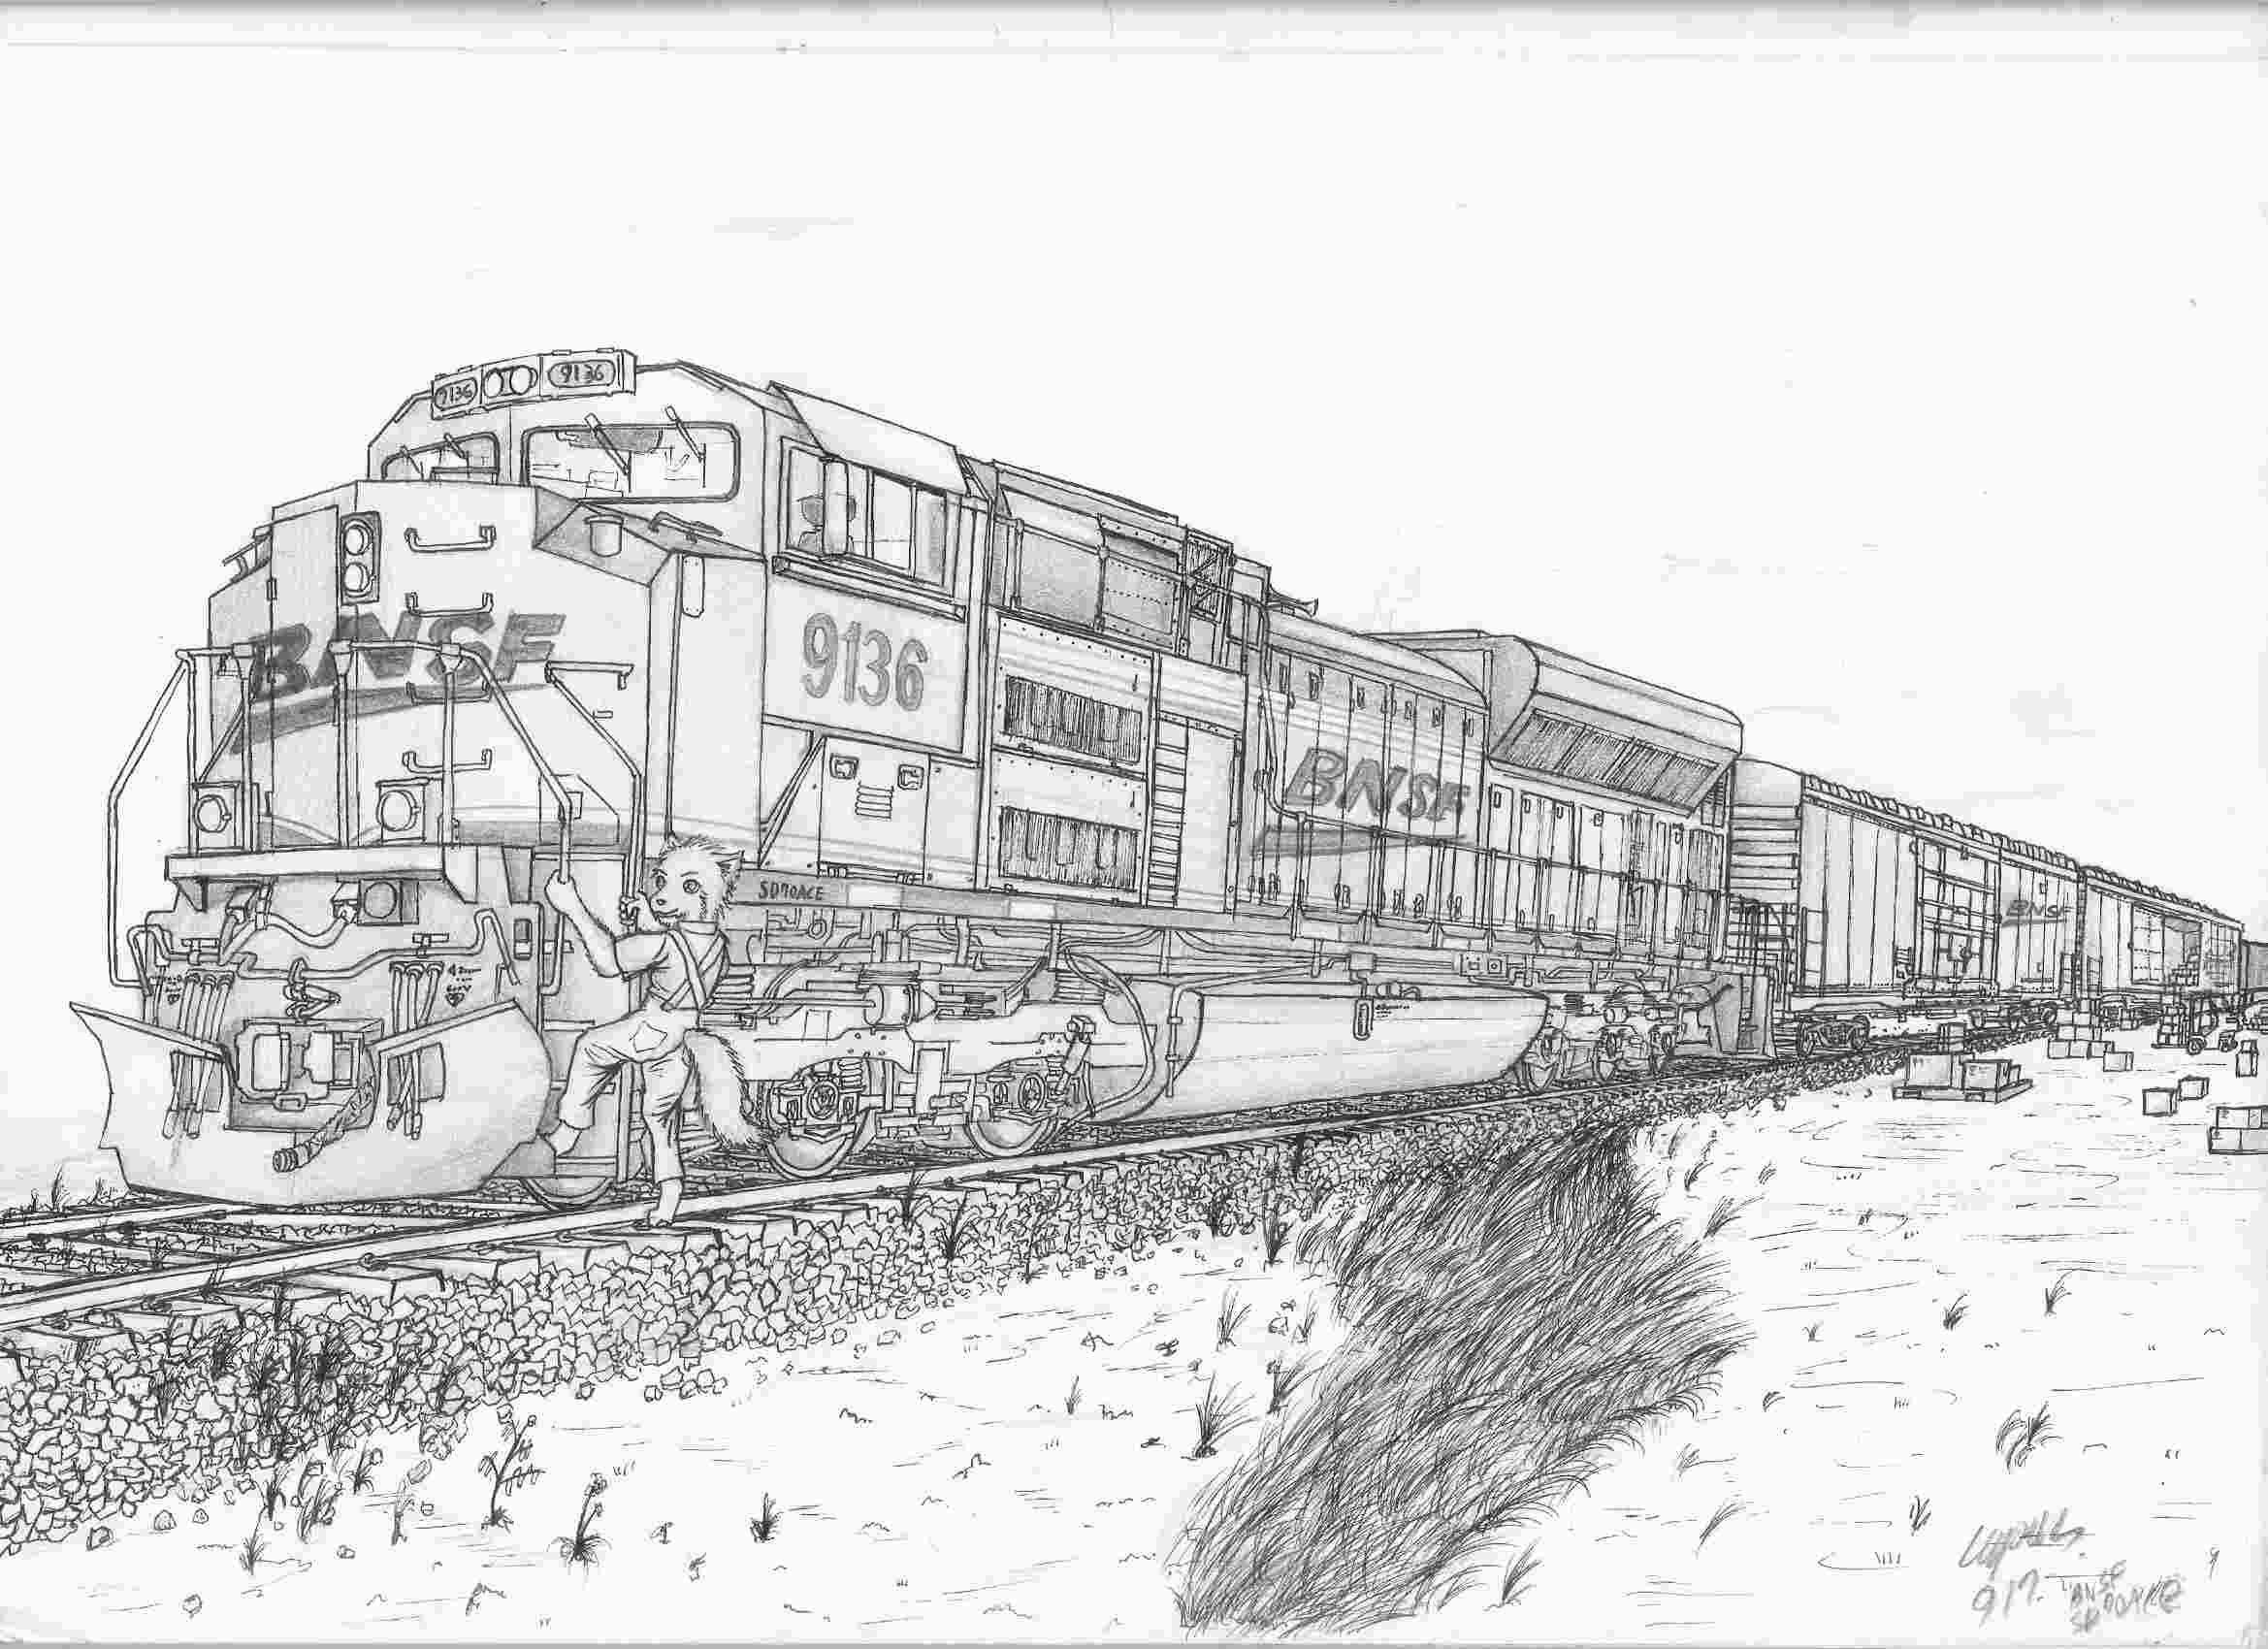 union pacific train coloring pages new coloring union pacific coloring pages kids coloring pacific union train coloring pages